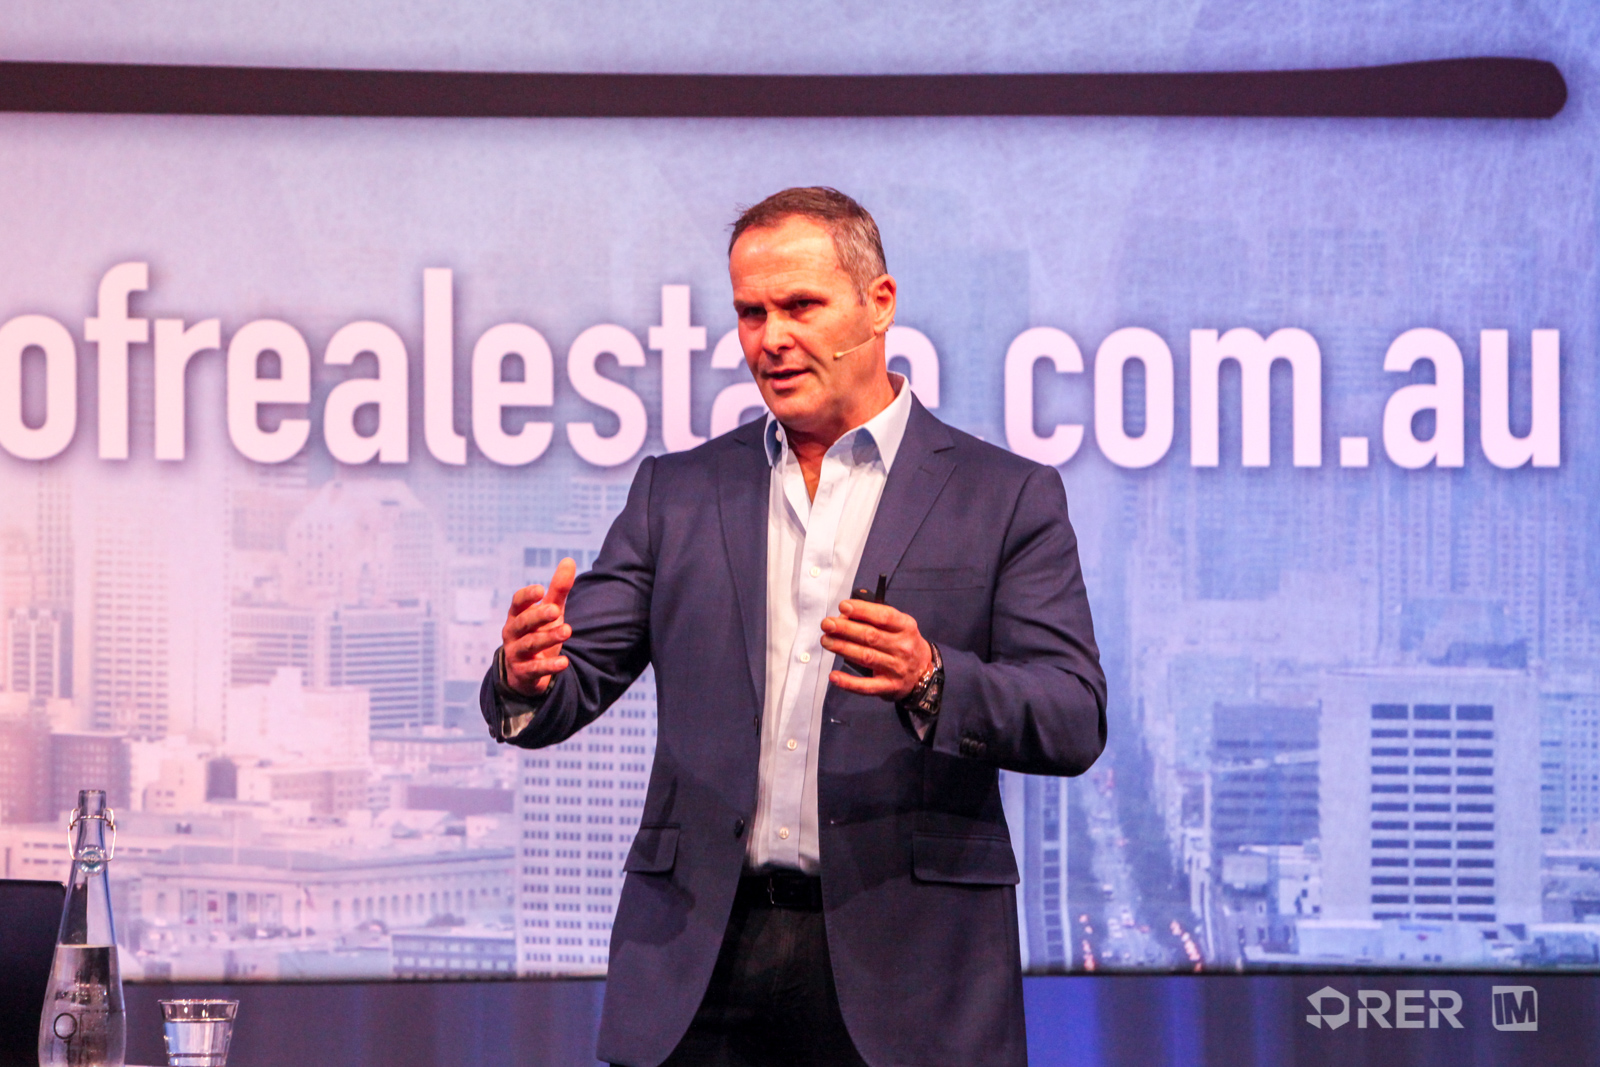 https://www.thebusinessofrealestate.com.au/wp-content/uploads/2017/09/39342_RER_THE_BUSINESS_OF_REAL_ESTATE_DAY1_LR-25.jpg